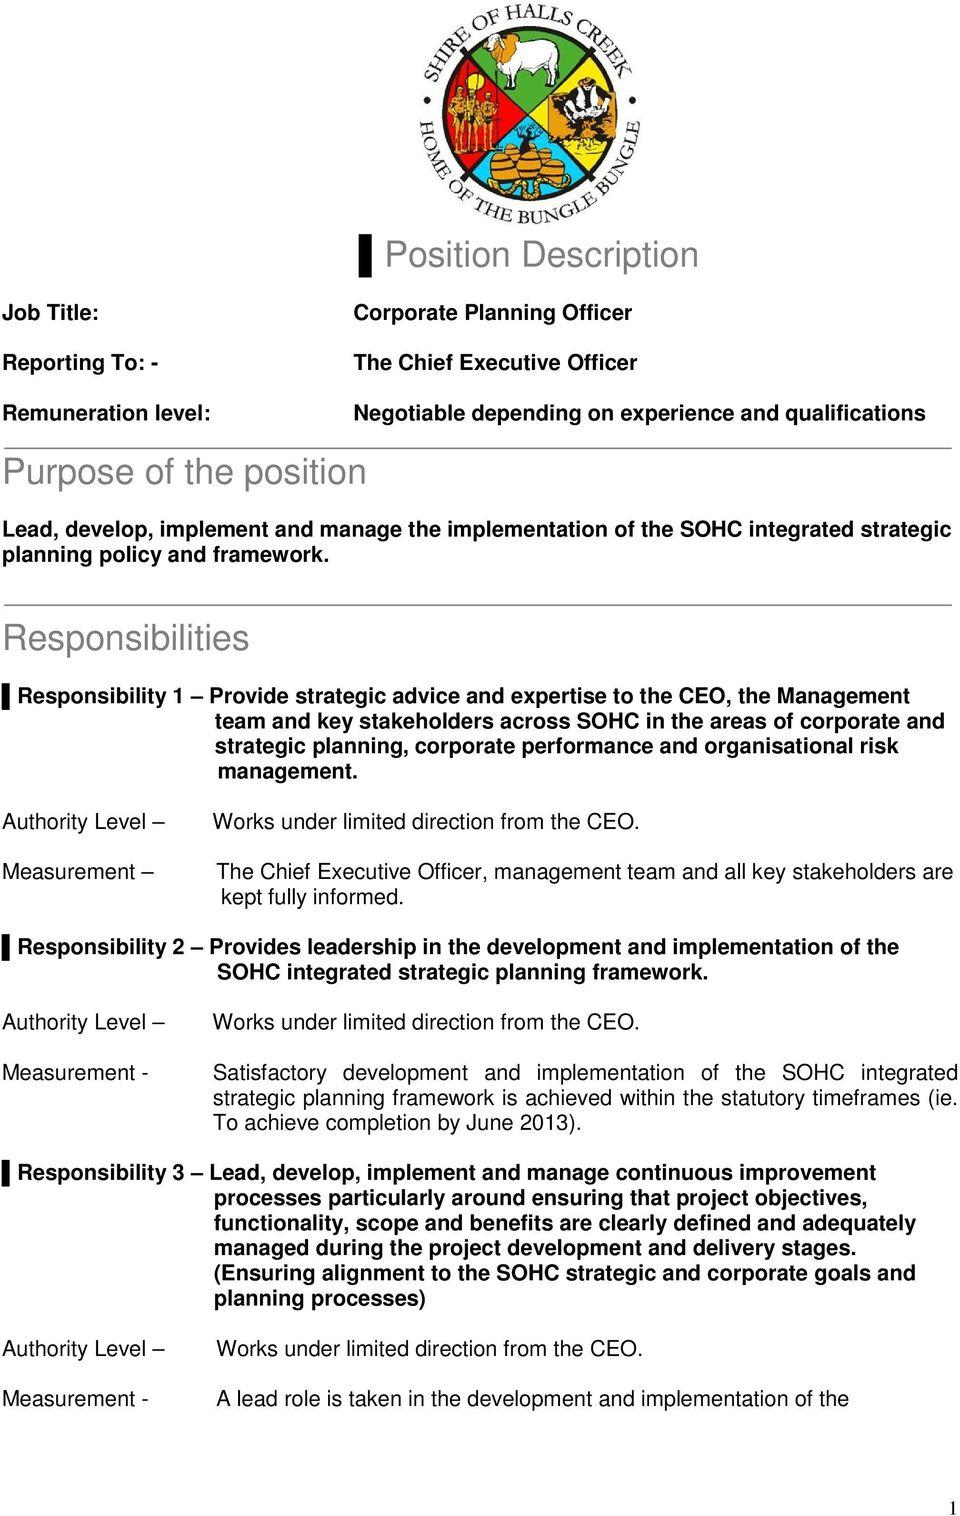 Responsibilities Responsibility 1 Provide strategic advice and expertise to the CEO, the Management team and key stakeholders across SOHC in the areas of corporate and strategic planning, corporate